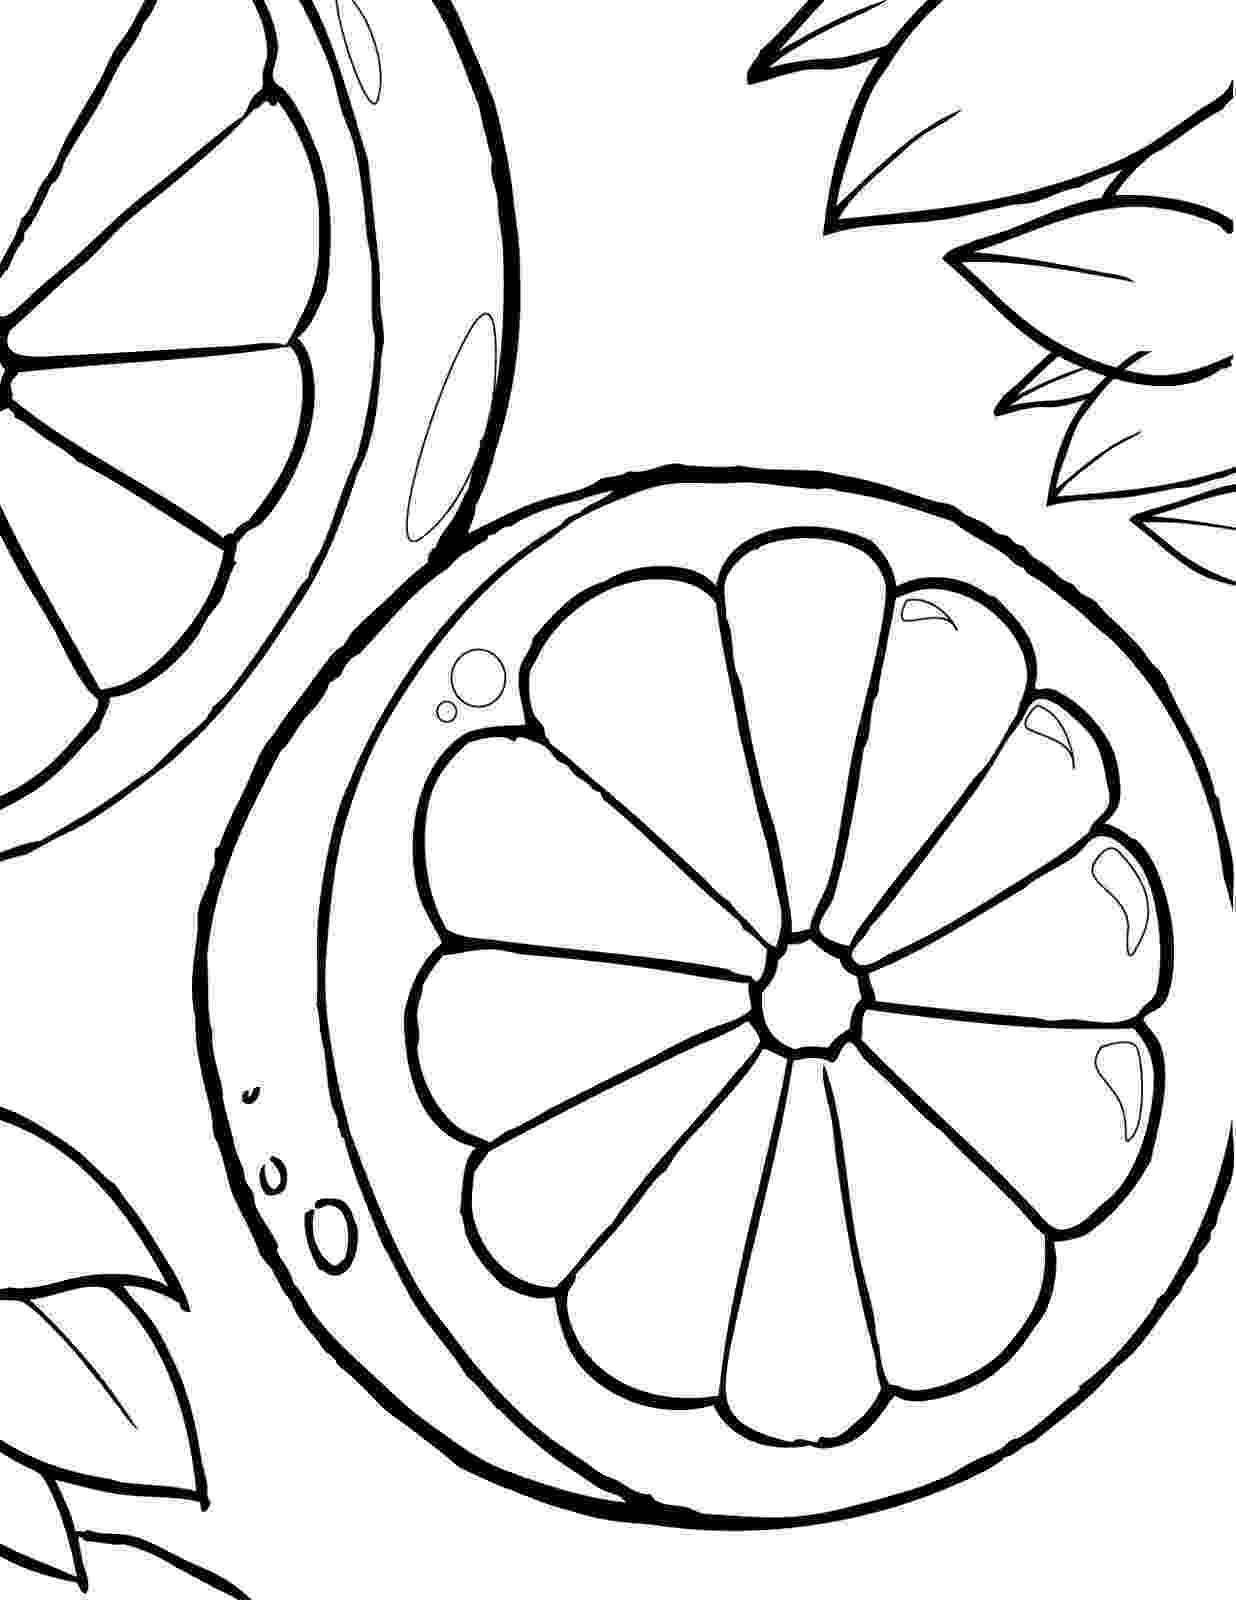 pictures of oranges oranges on a branch fruit coloring page for kids fruits of oranges pictures